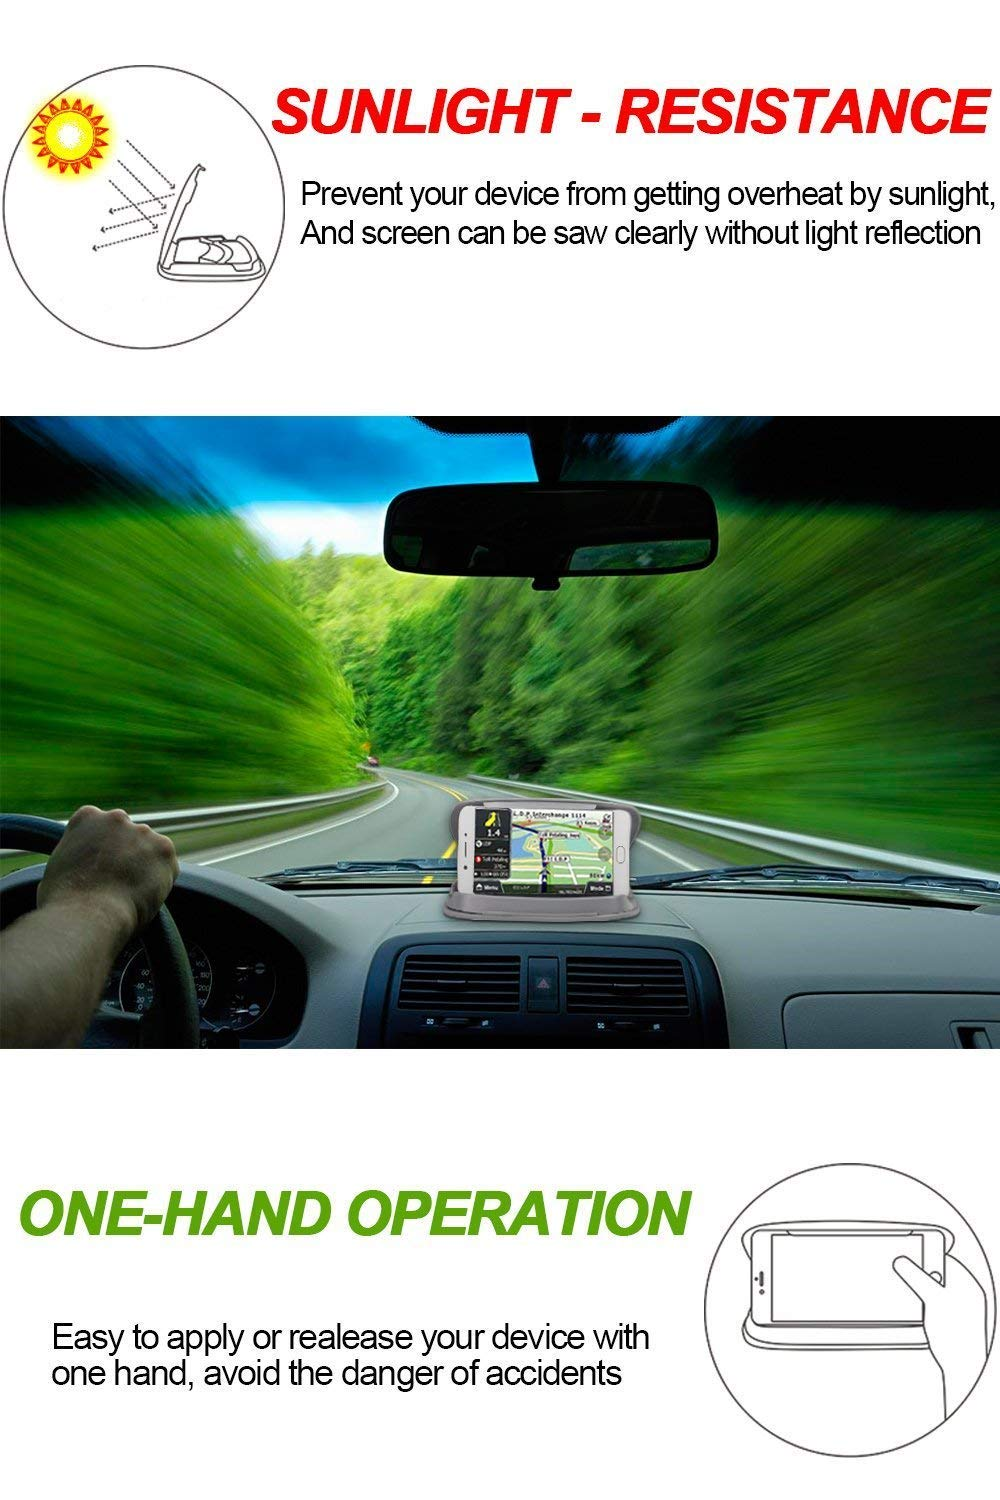 Cell Phone Holder for Car Car Phone Mount Holder Cradle Compatible for iPhone Xs XS Max X 8 8 Plus 7 SE 6s 6 Plus 5s 5 4s Samsung Galaxy S6 S5 Note LG Sony Nokia Google Nexus Motorola and GPS